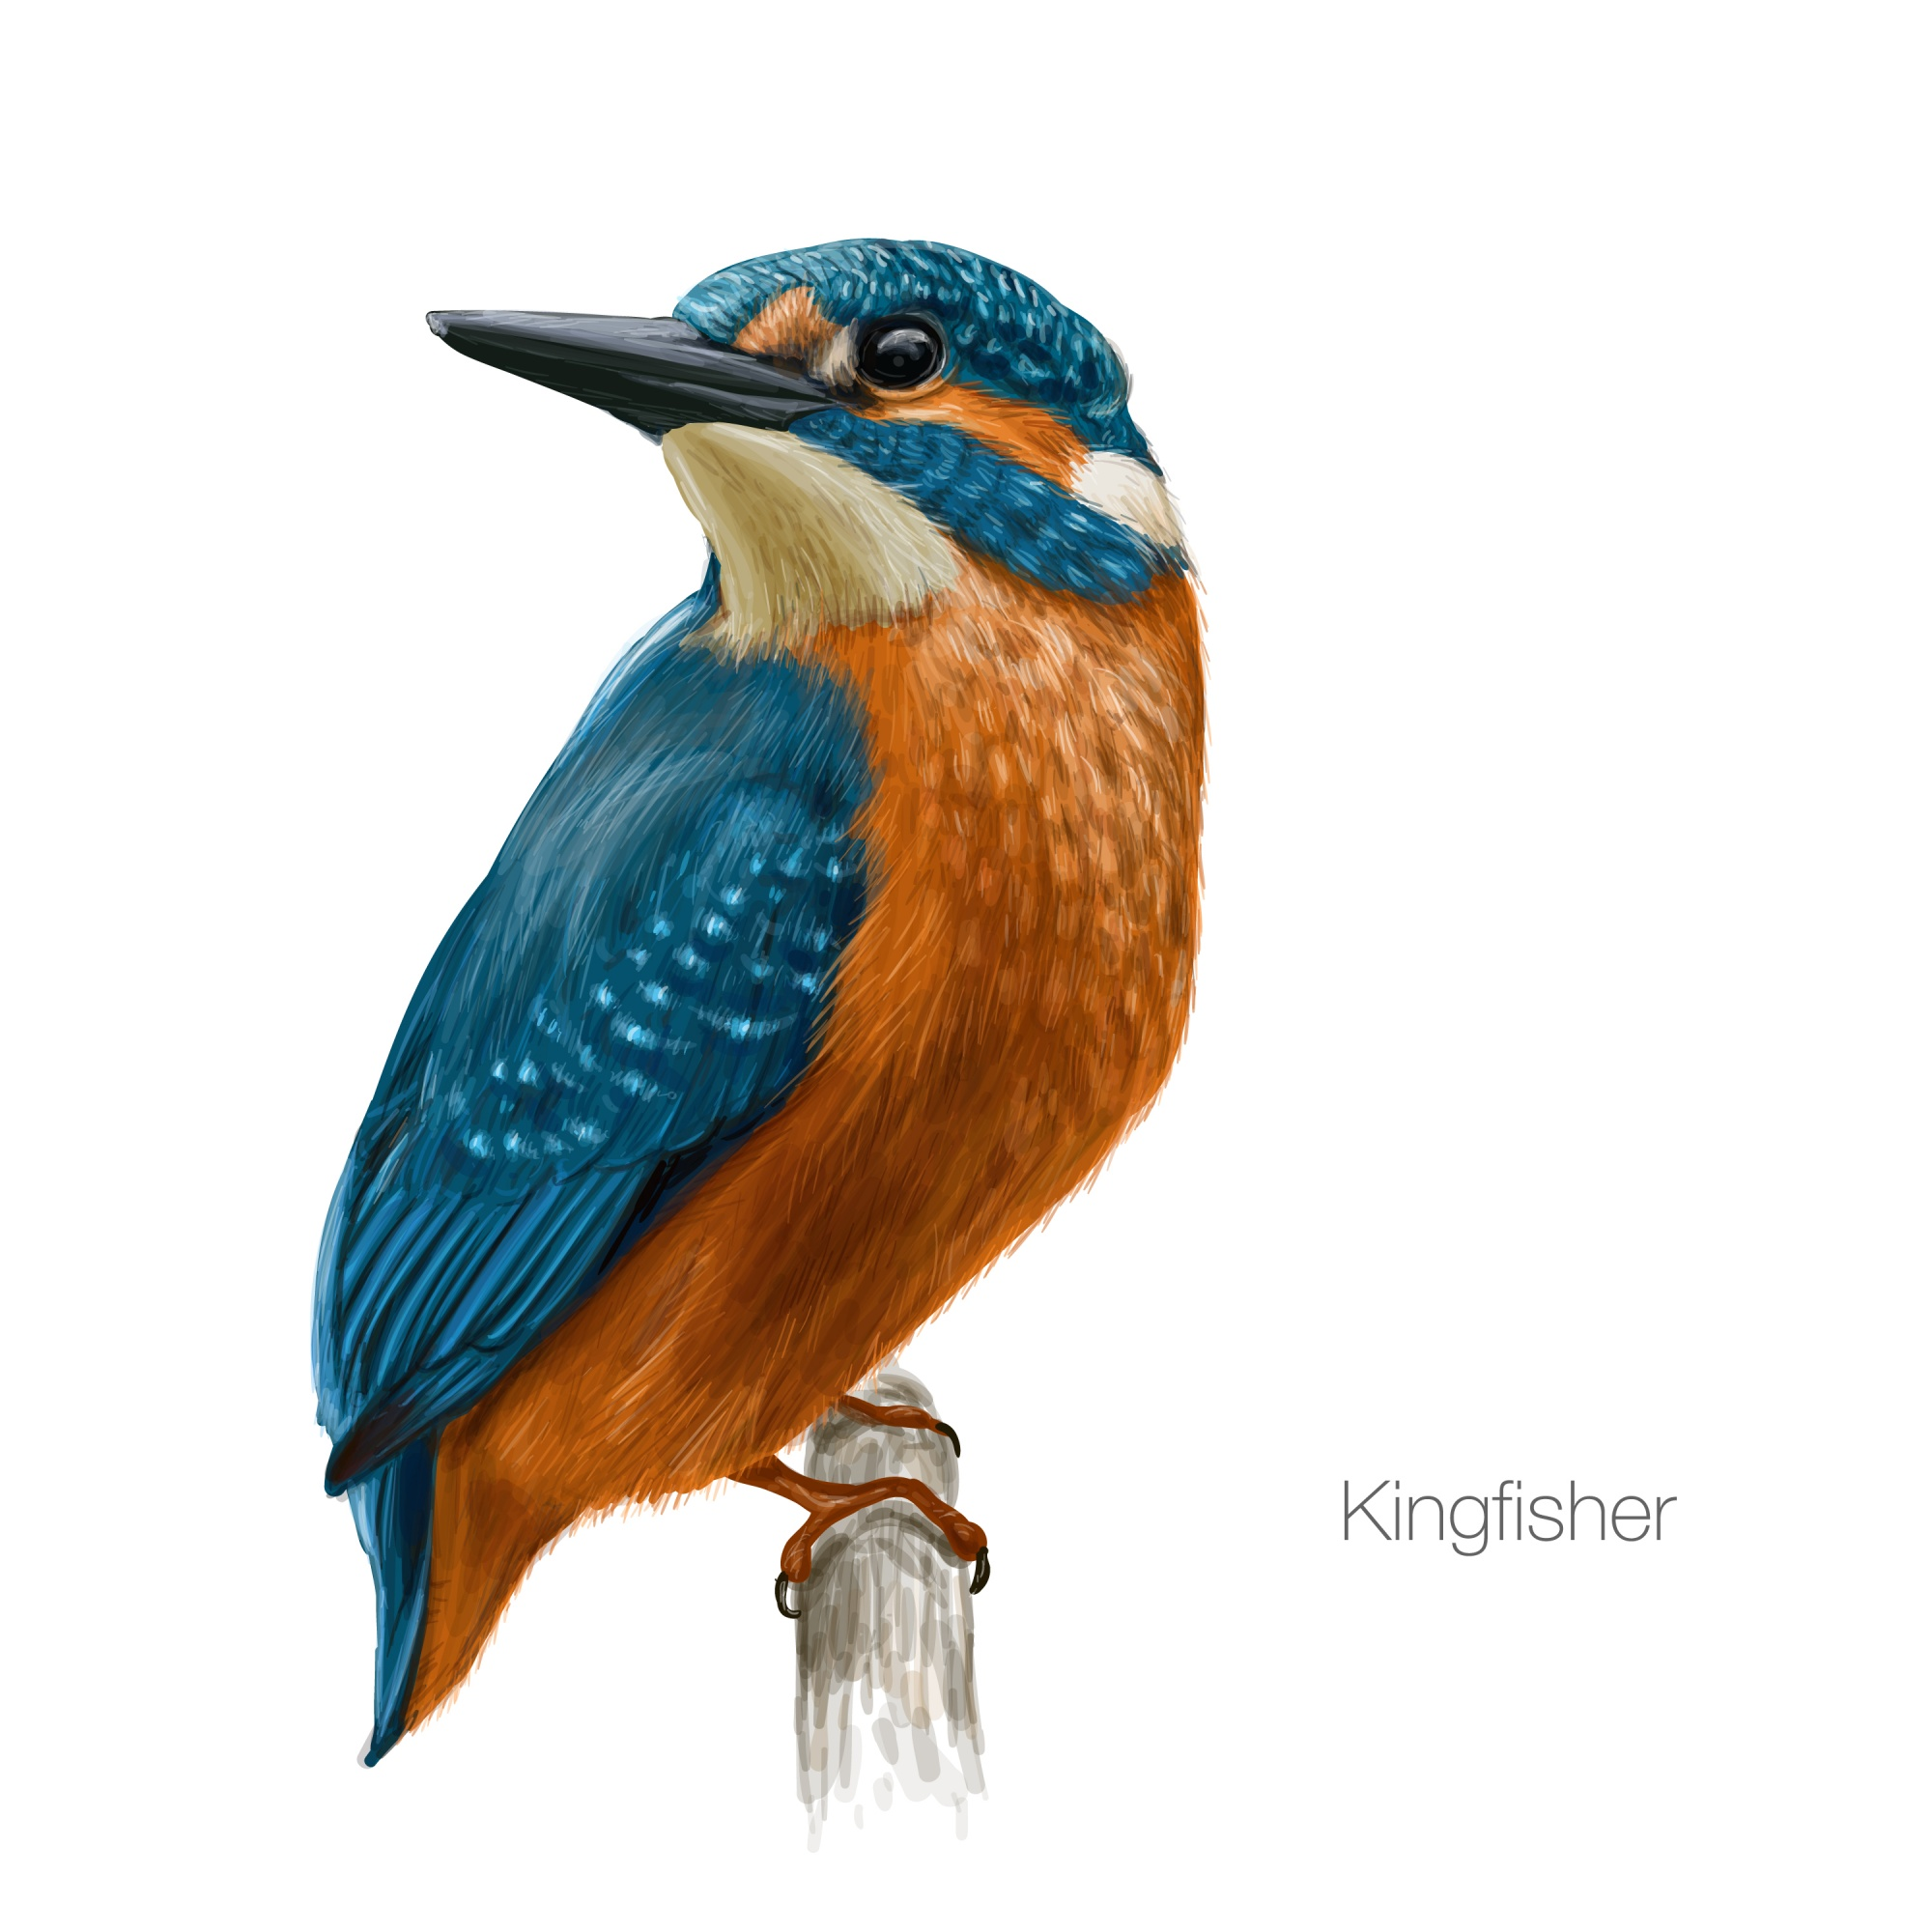 Kingfisher vogel illustratie